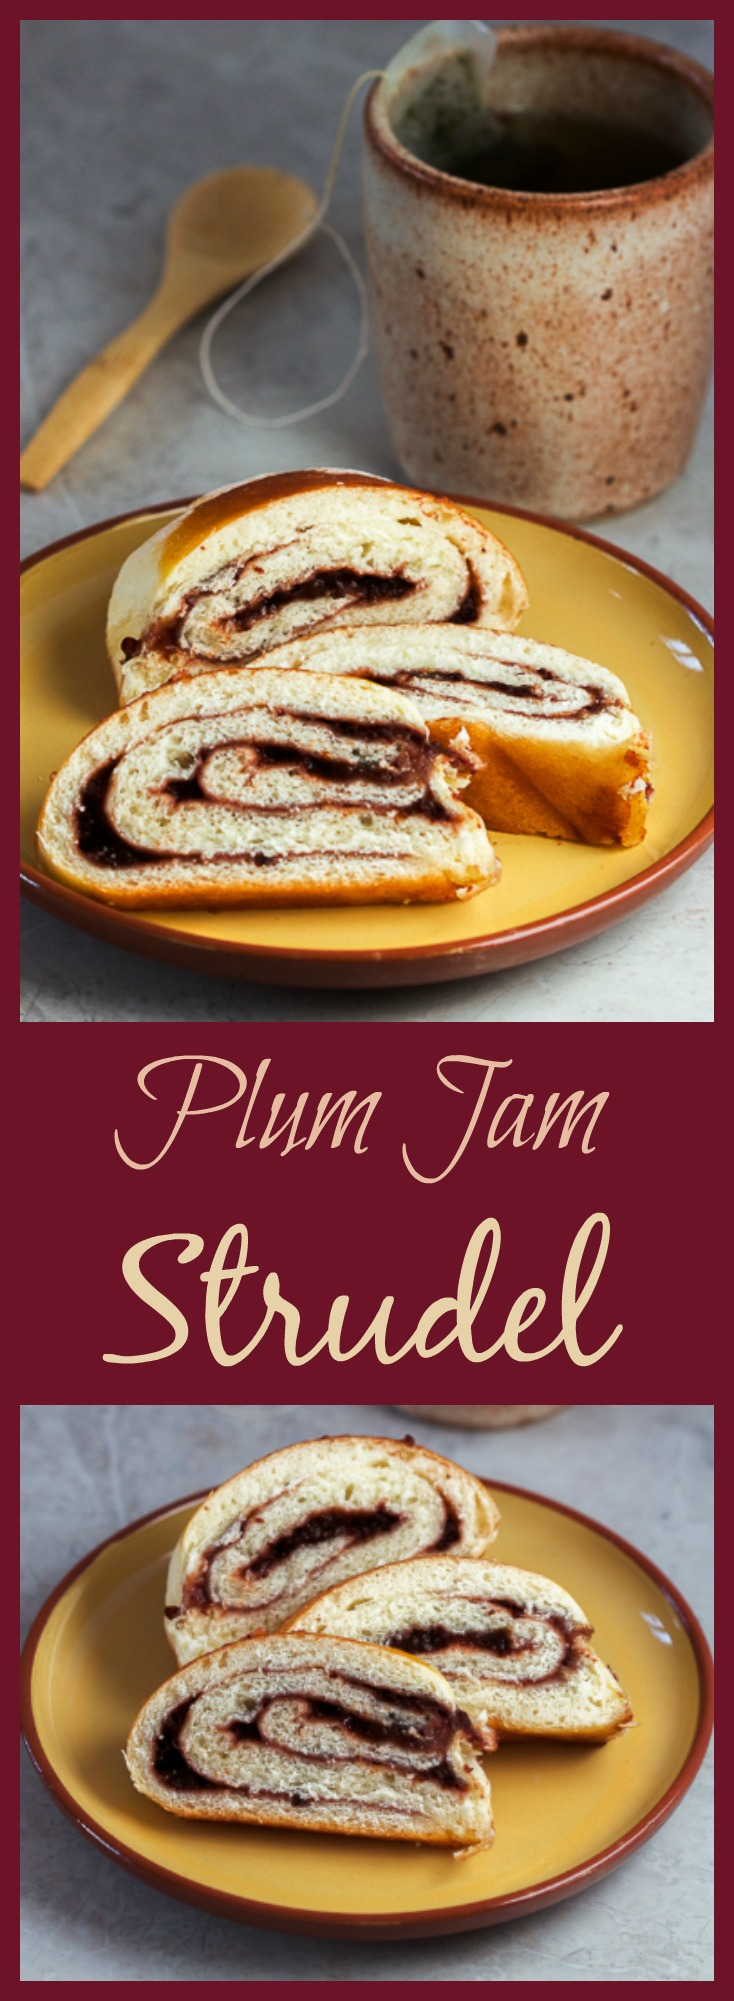 Soothe your appetite for pastries with a warm, plum jam filled strudel. All that this straightforward dessert requires from you is a little patience while waiting for the dough to rise. Perfect with a cup of tea on a rainy weekend afternoon.